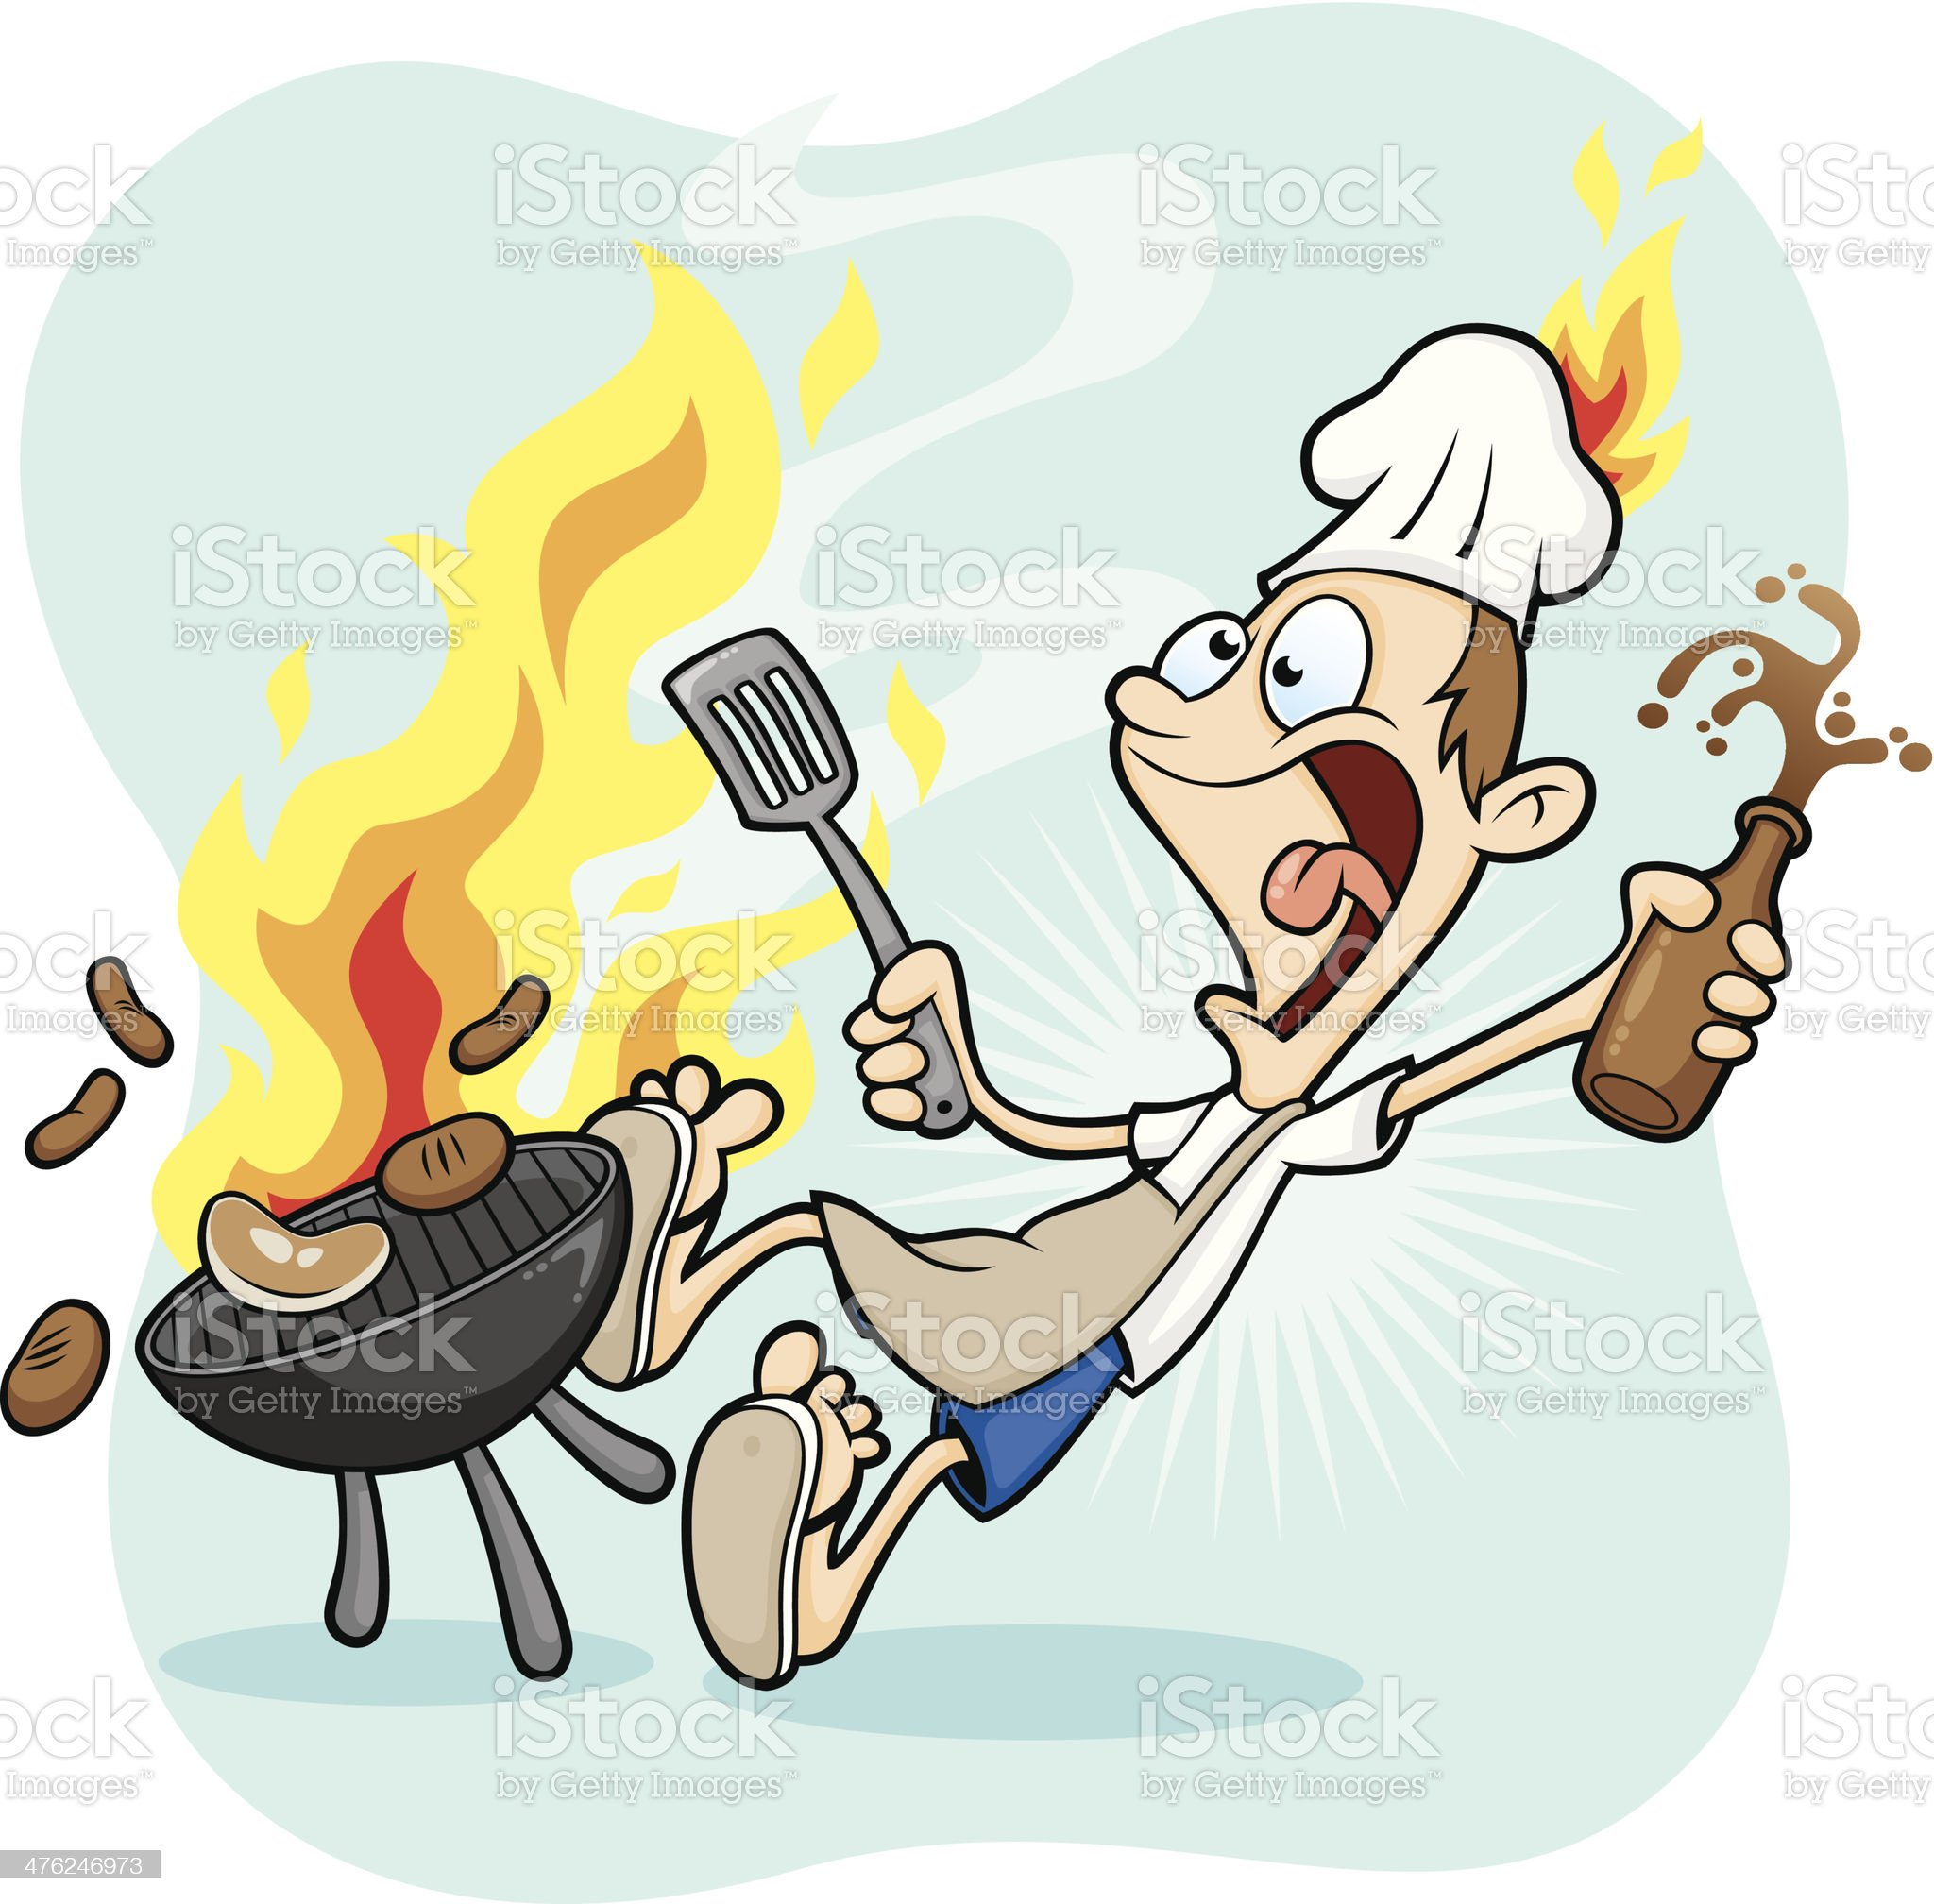 Bad Health and Safety - BBQ Beer Man on Fire royalty-free stock vector art